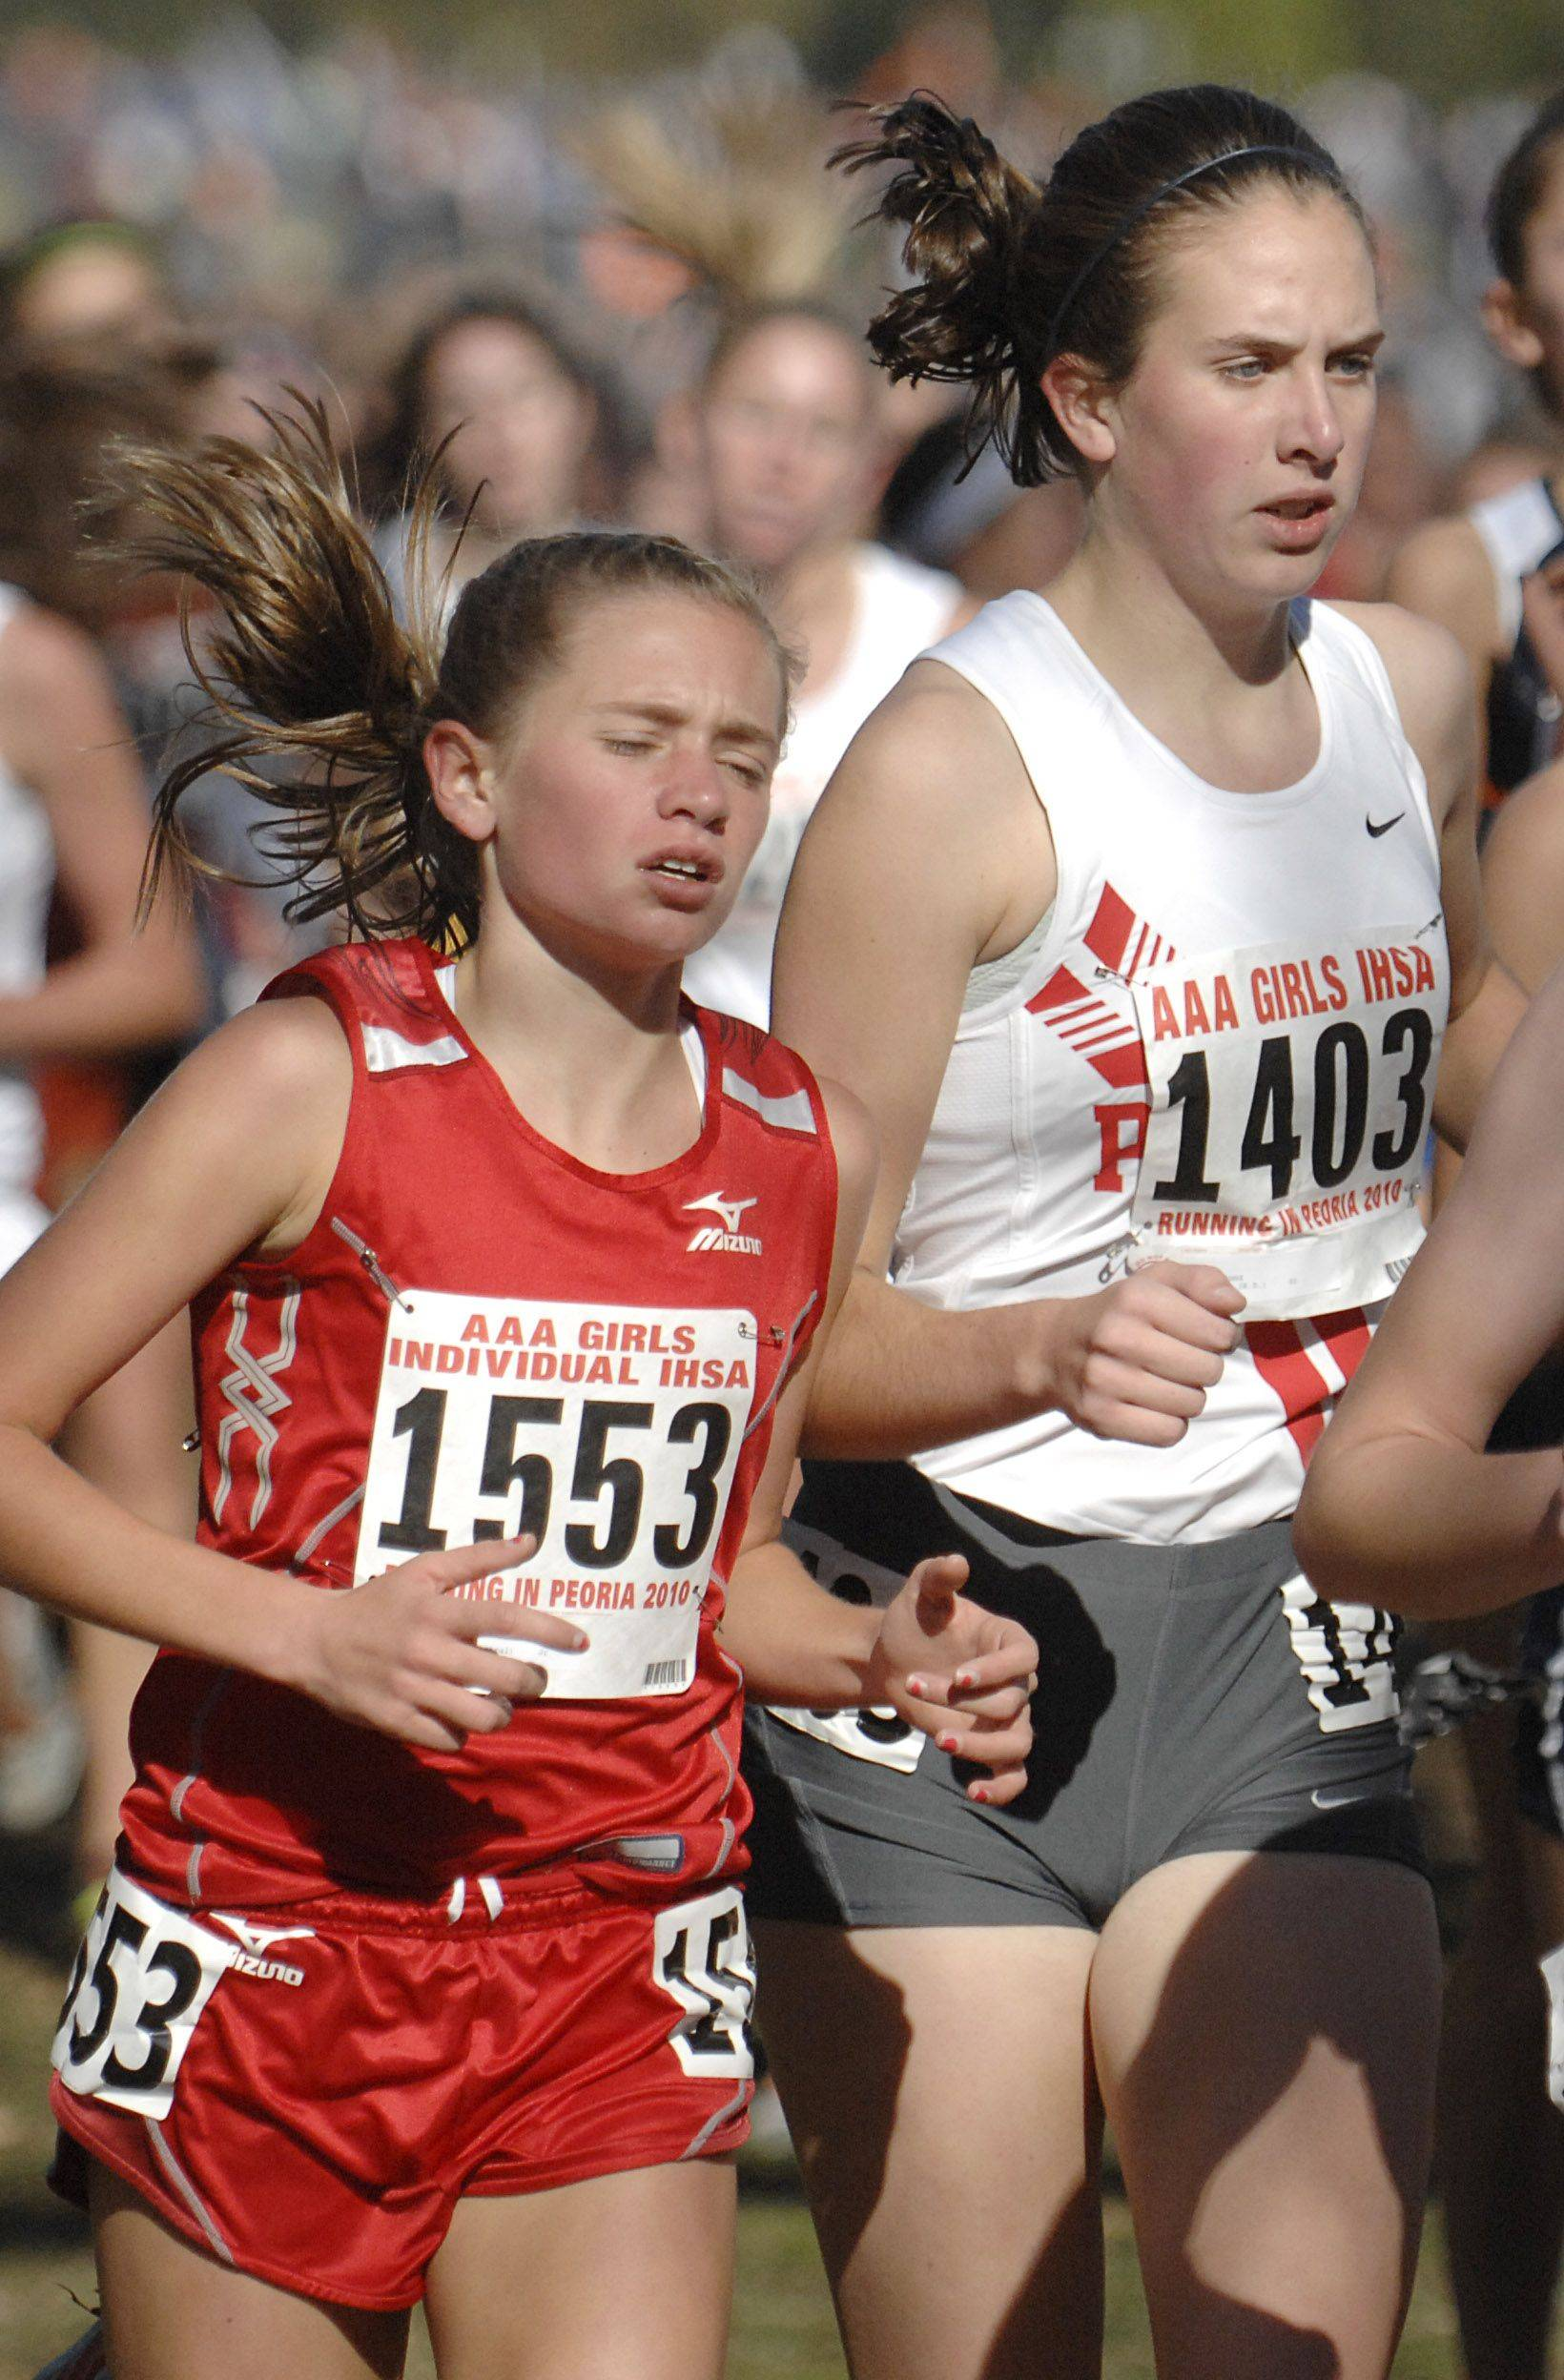 Naperville Central's Amanda Fox, left, and Palatine High School's Becca Sund in the 3A class of the state cross country meet at Detweiller Park in Peoria on Saturday, November 6.